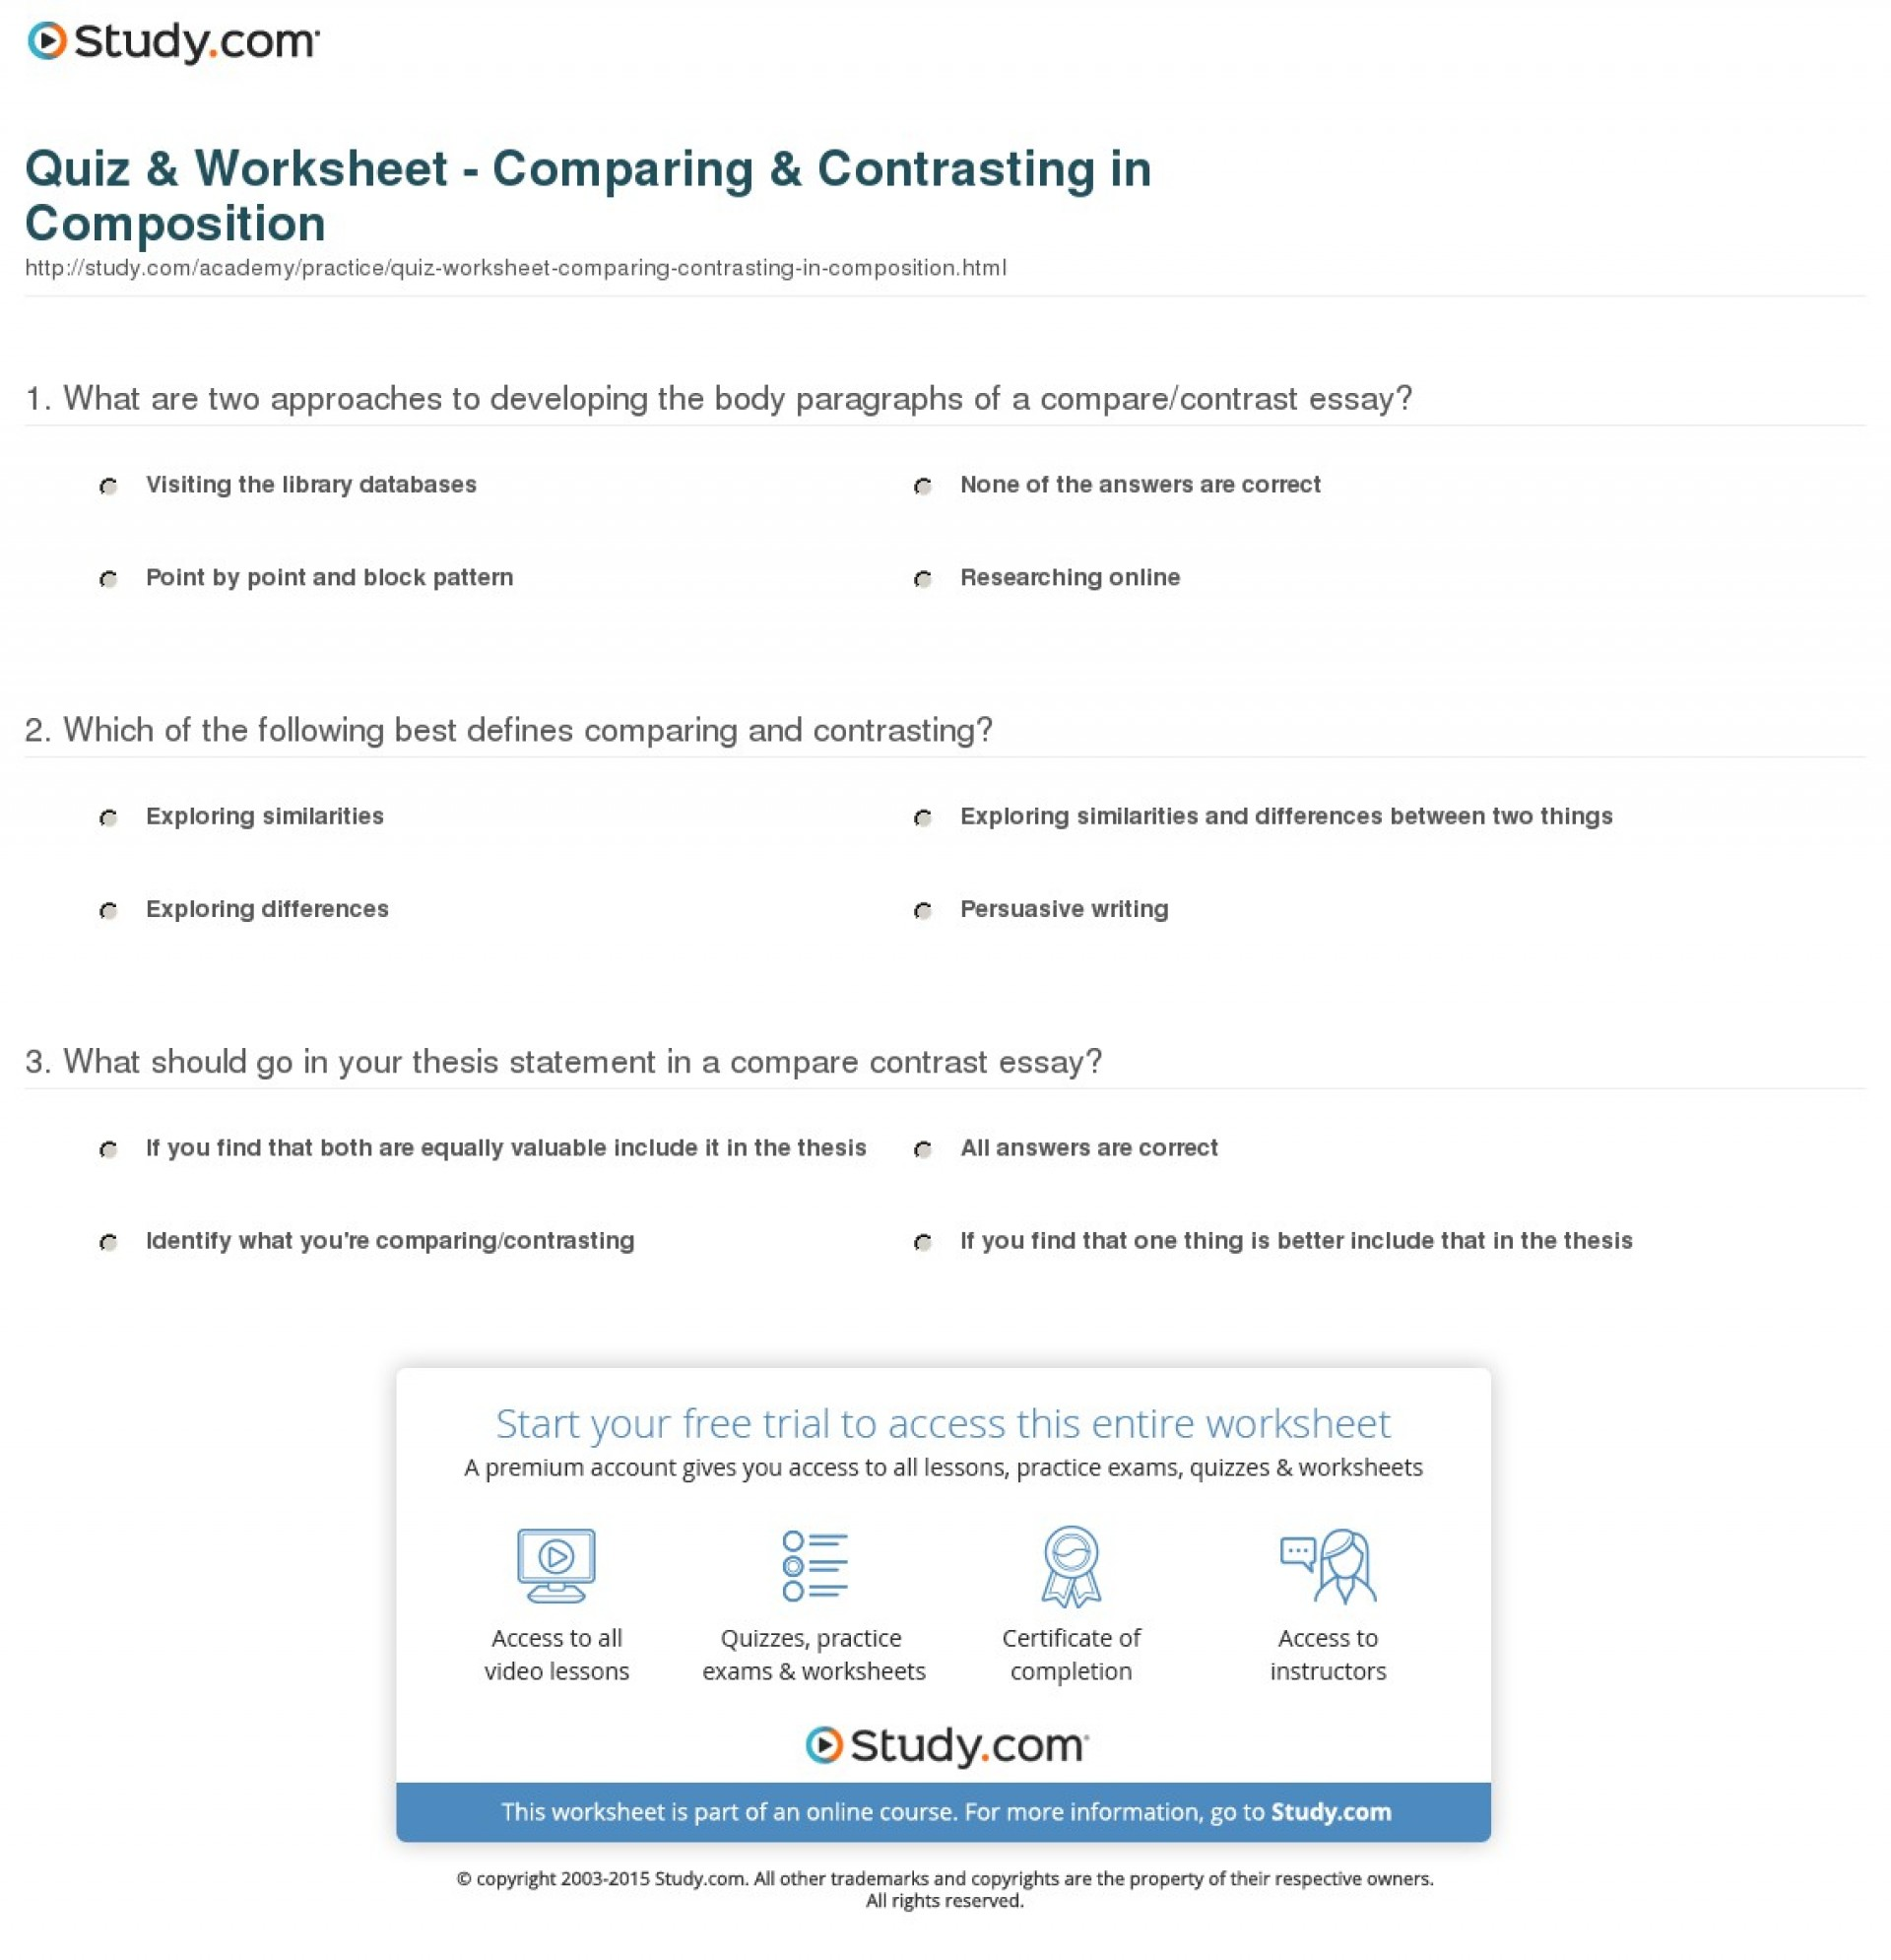 016 Quiz Worksheet Comparinging In Composition Essay Example Comparison And Awful Contrast Rubric Compare Template Word 1920